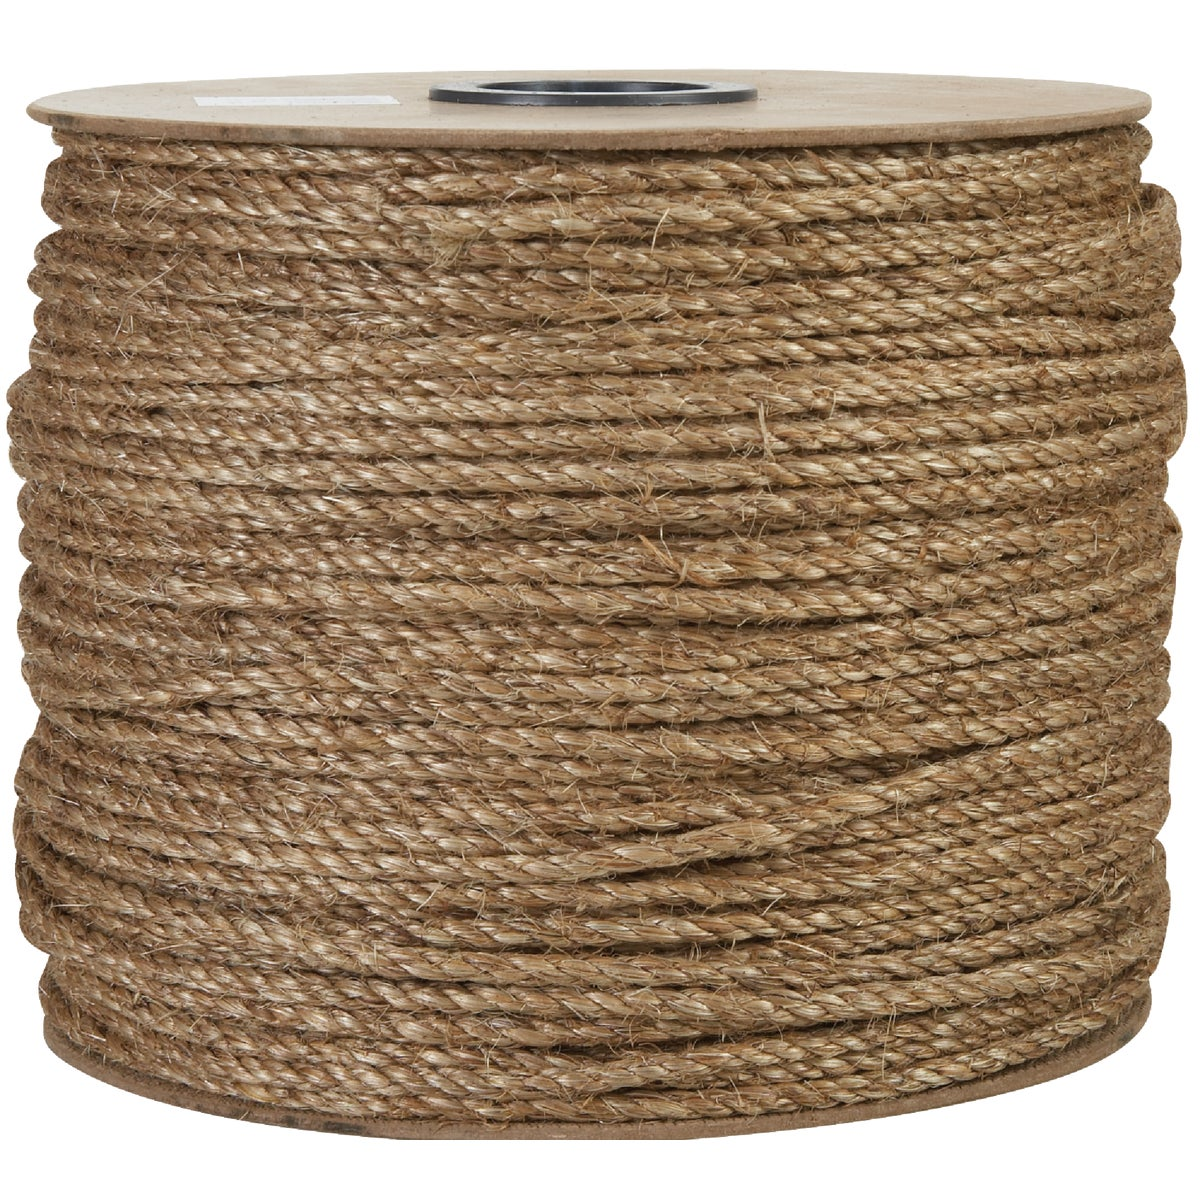 "1/4""X1200' MANILA ROPE - 708470 by Do it Best"